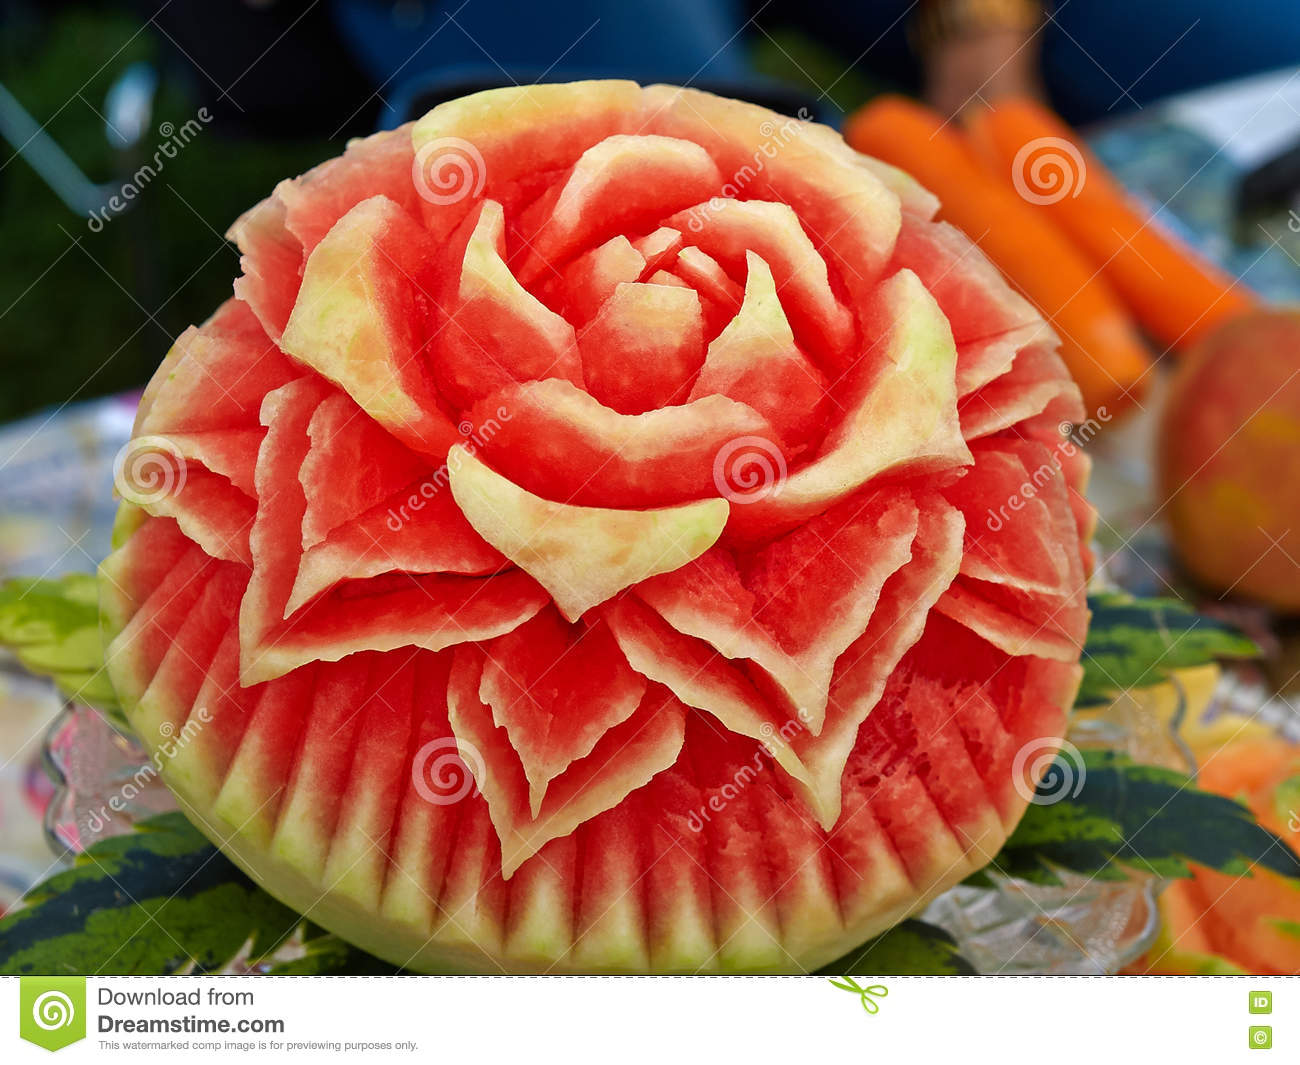 Closeup the art of watermelon carving fruit royalty free